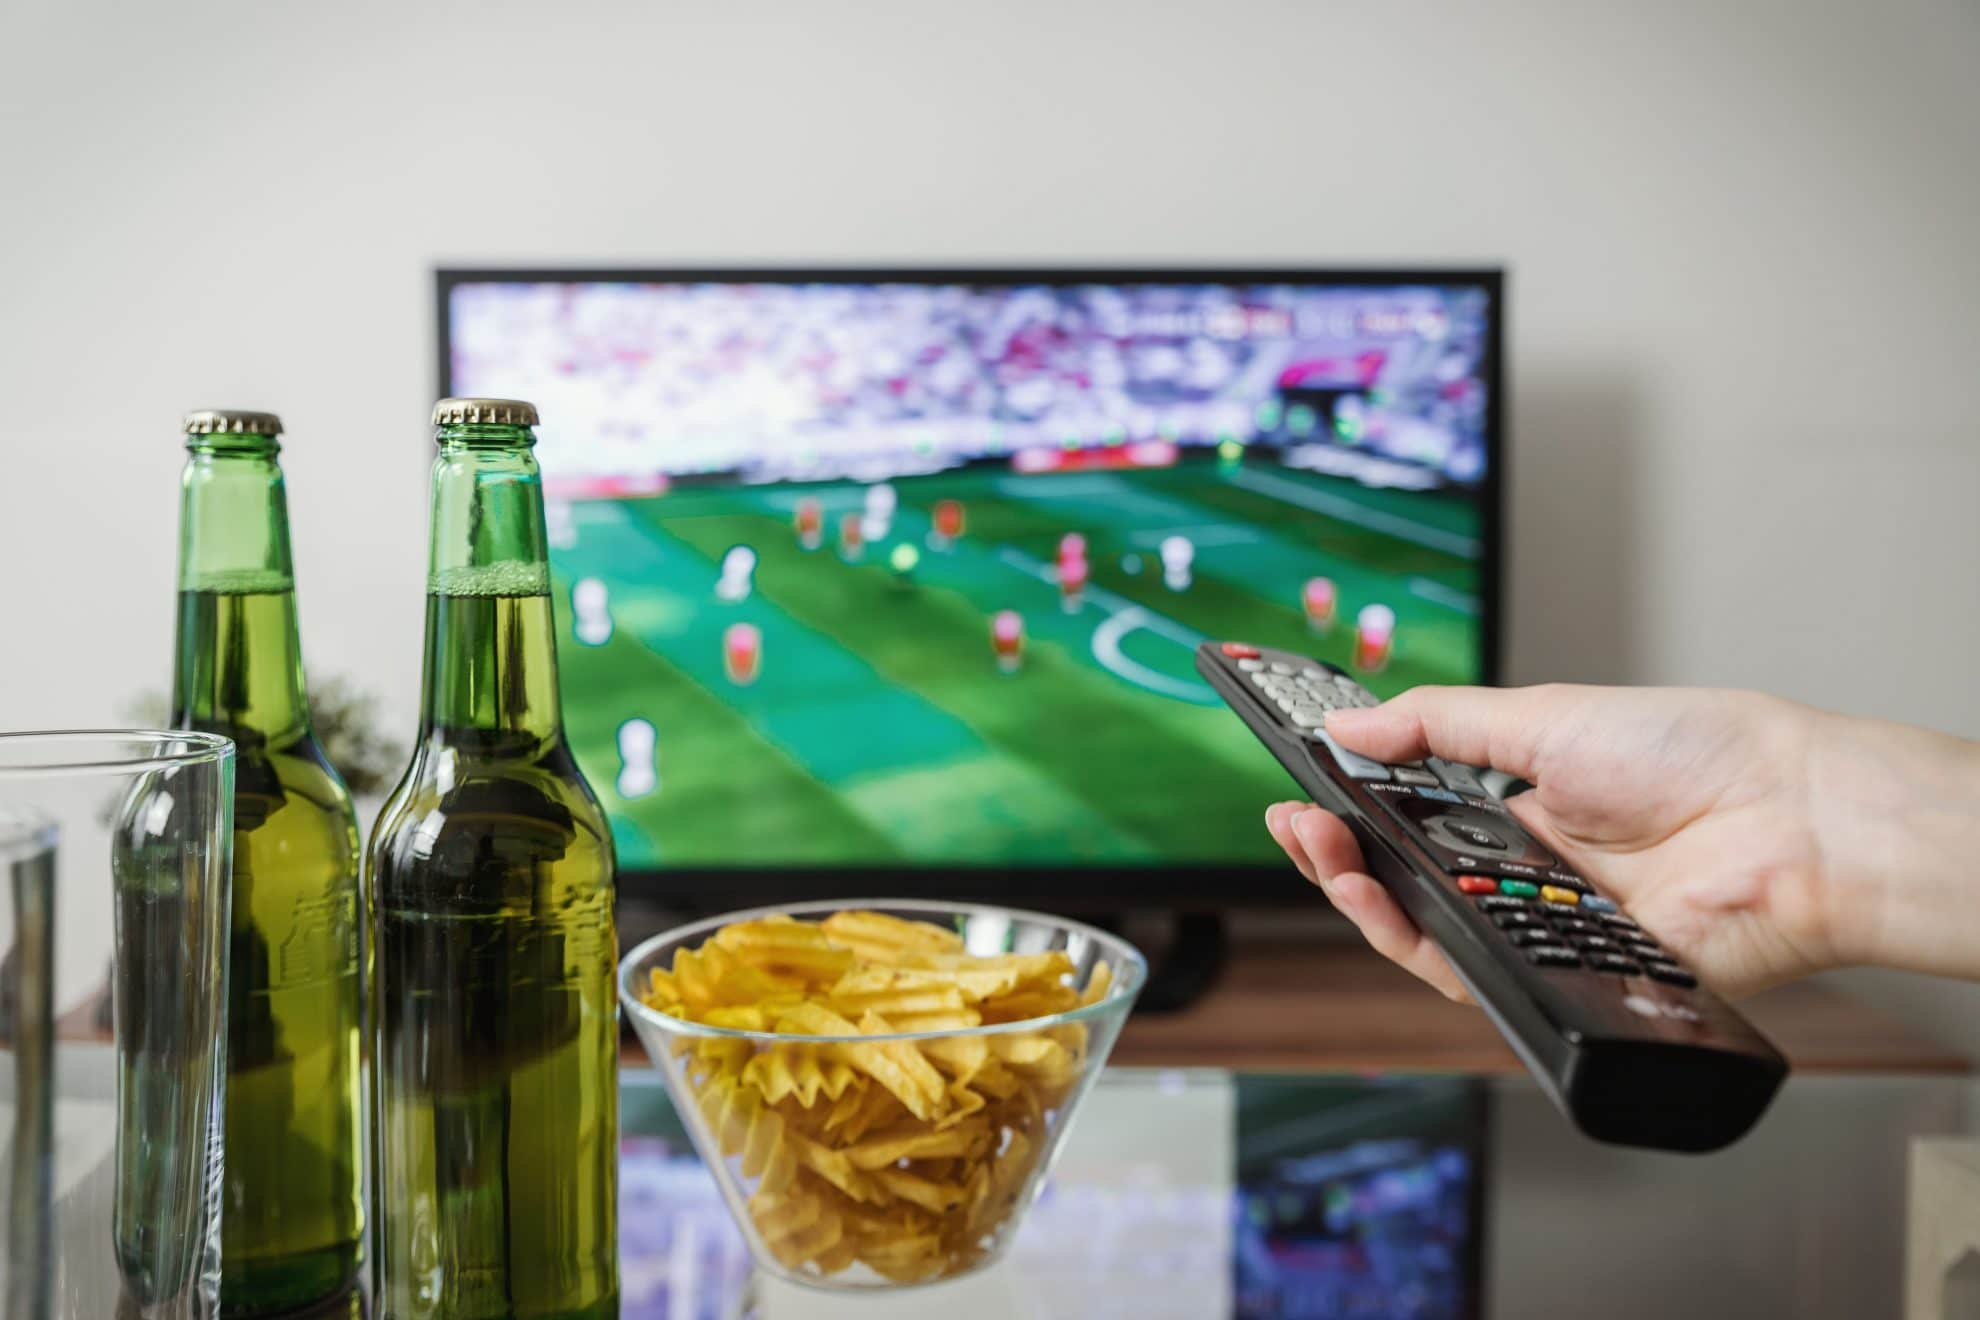 TV Bottles Of Beer Crisps And Man Holding Remote Control